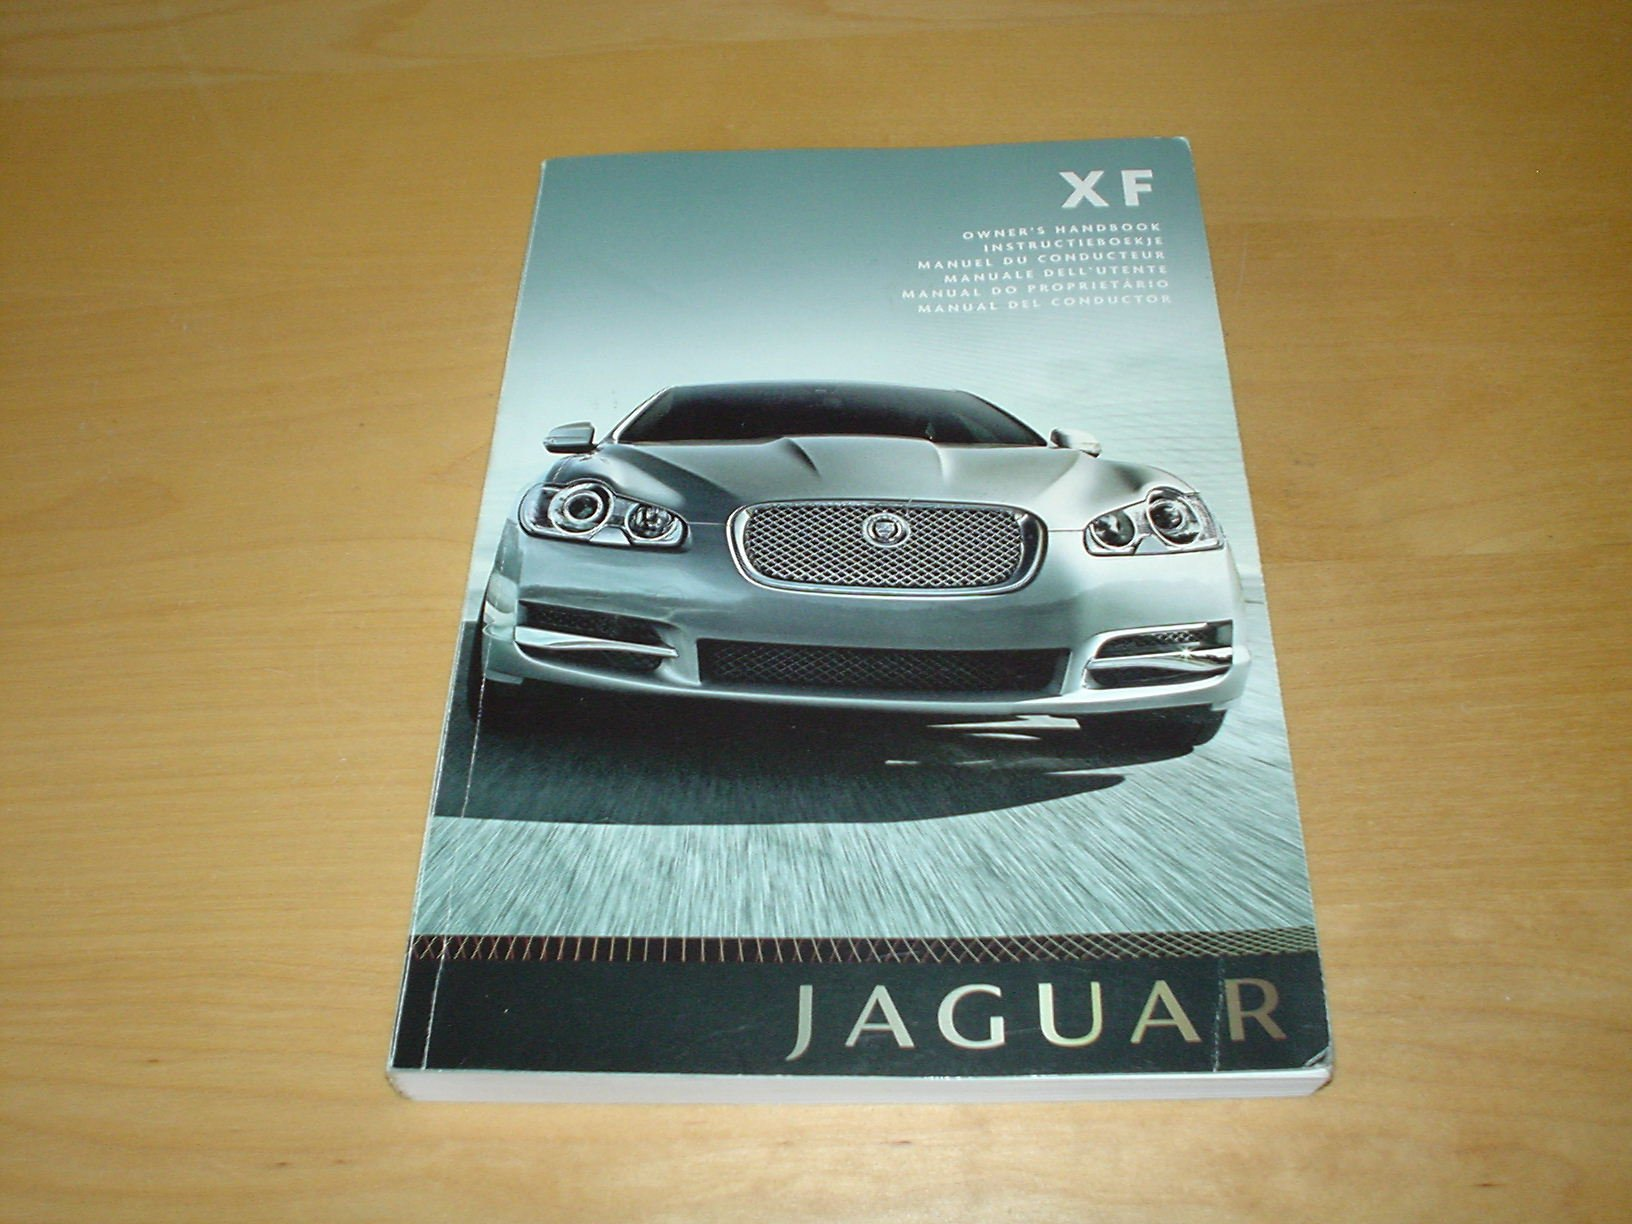 2011 Jaguar Xf Owners Manual Fuse Box Diagram Handbook C W Wallet 2008 2 7l V6 Rh Amazon Co Uk Interior Service